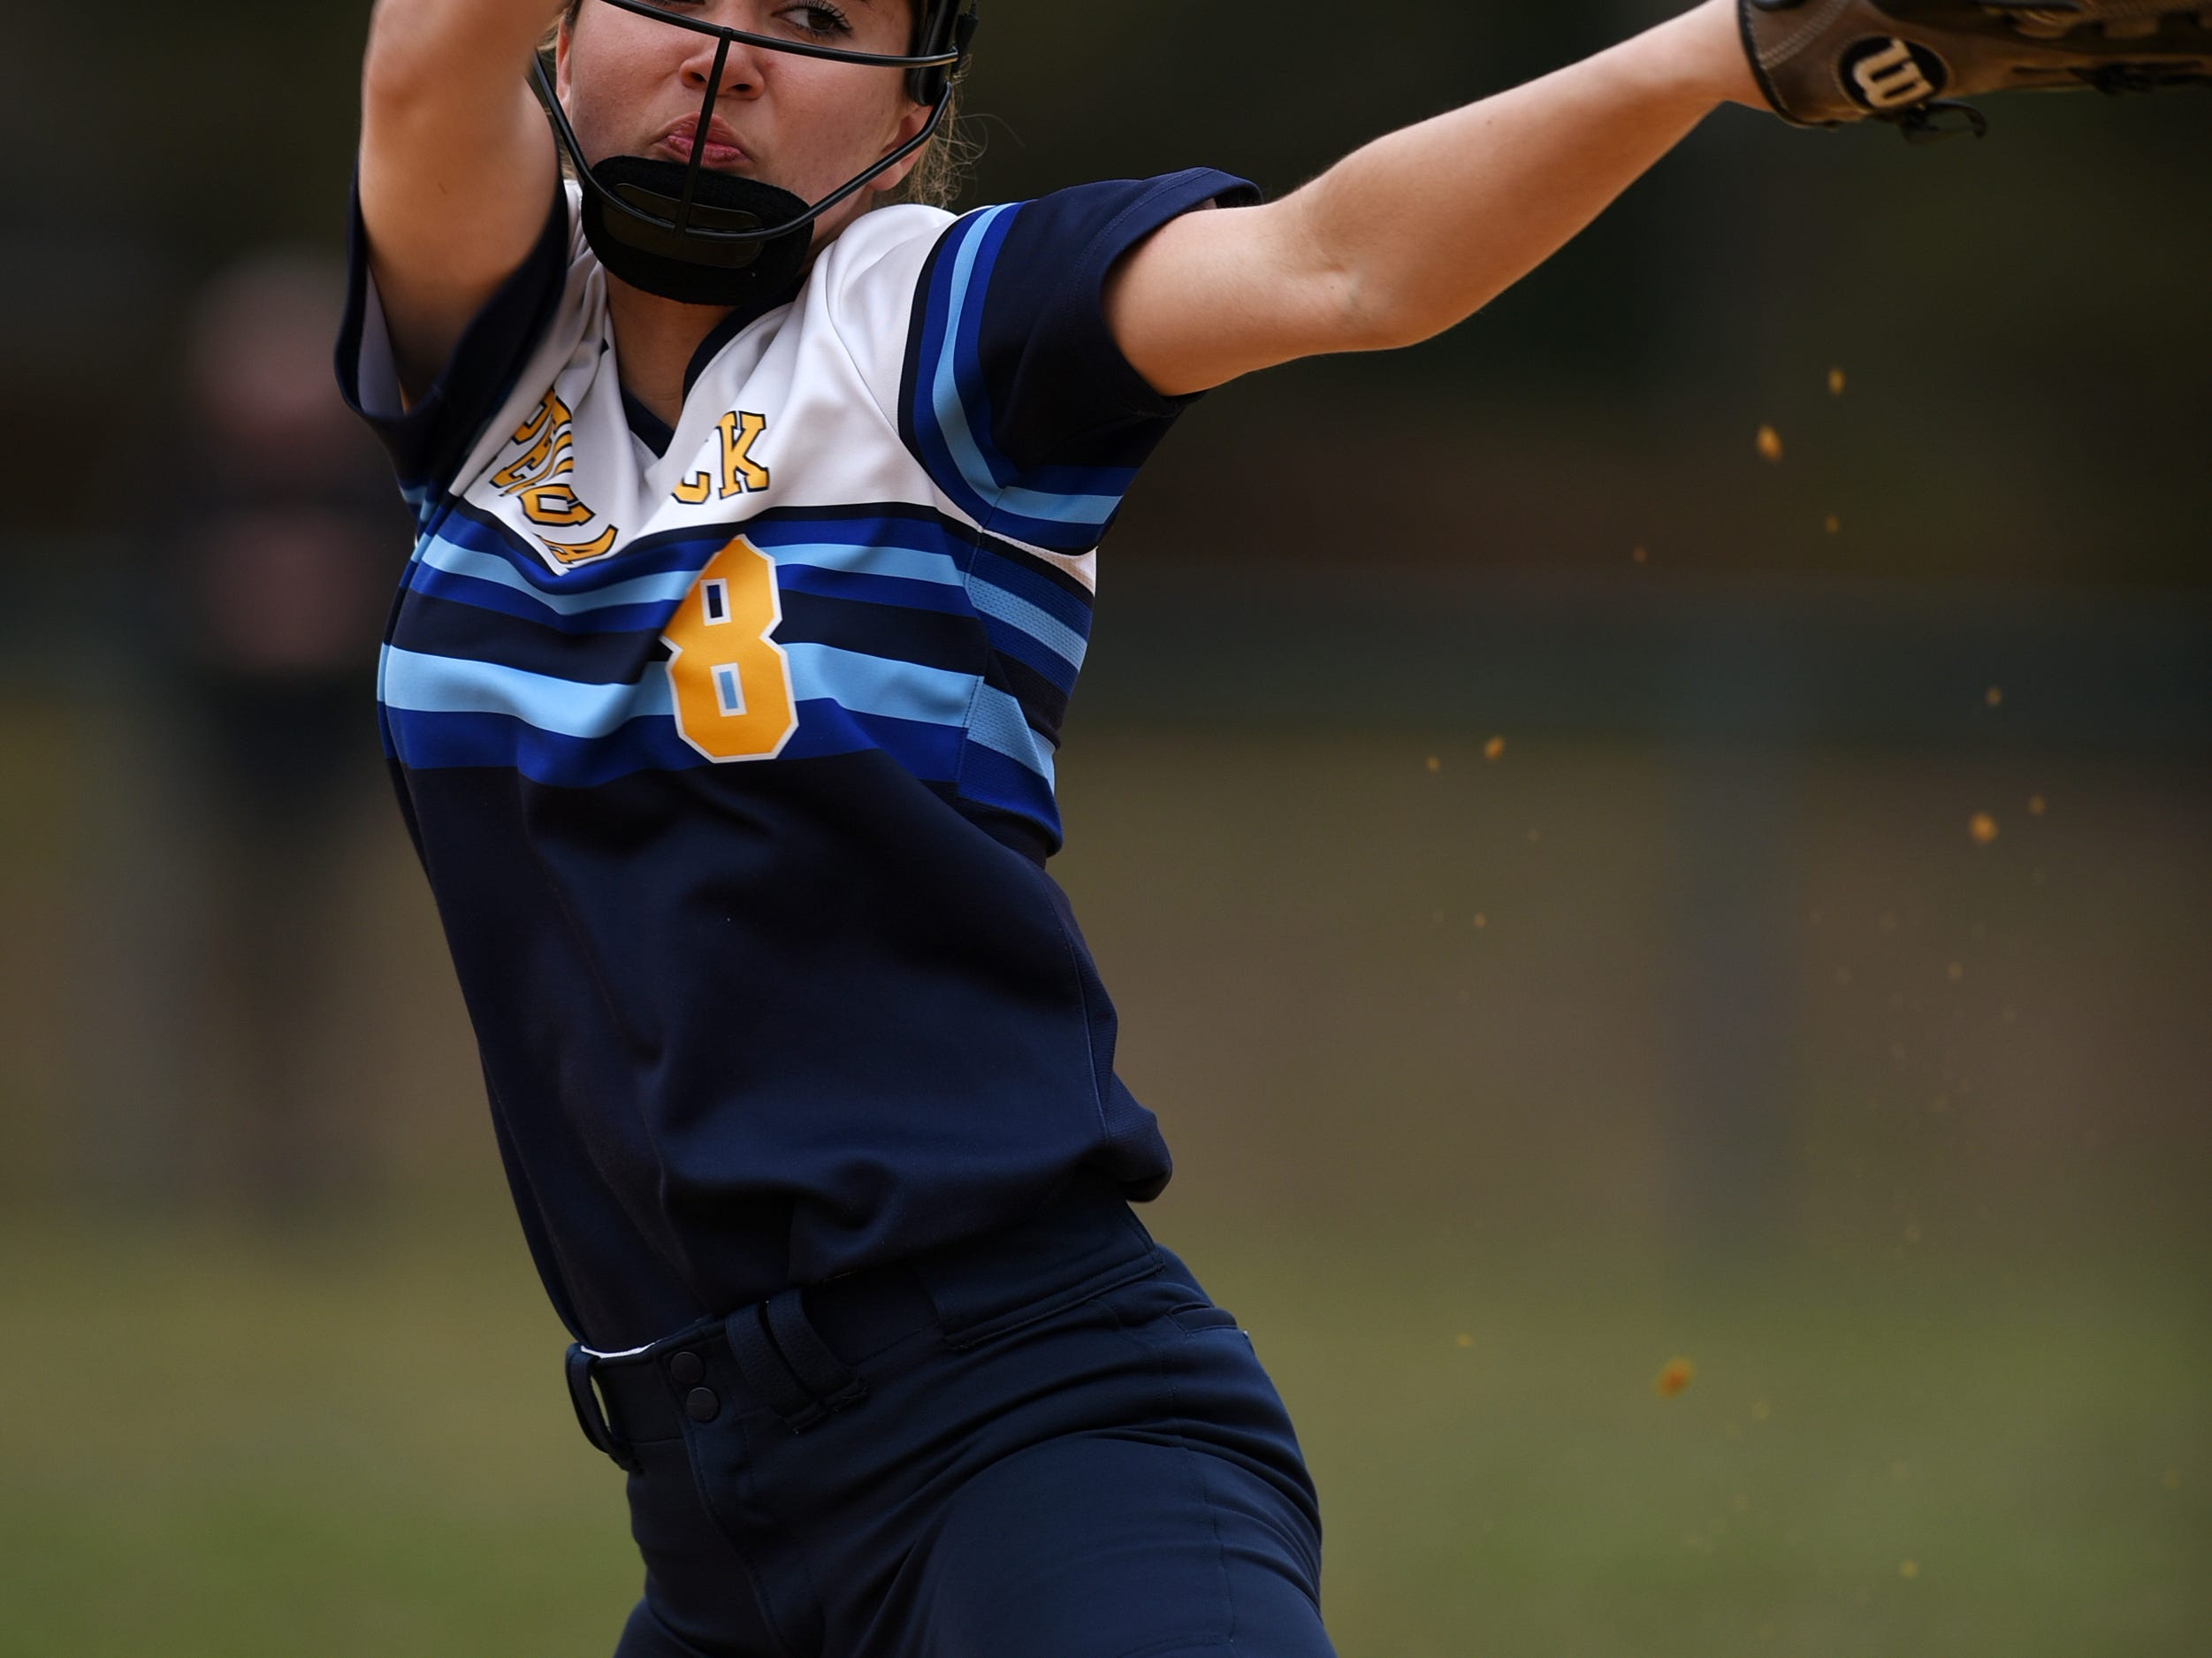 Pequannock at Kinnelon softball game in Kinnelon on Friday April 12, 2019. P#8 Brielle Toone pitches the ball.